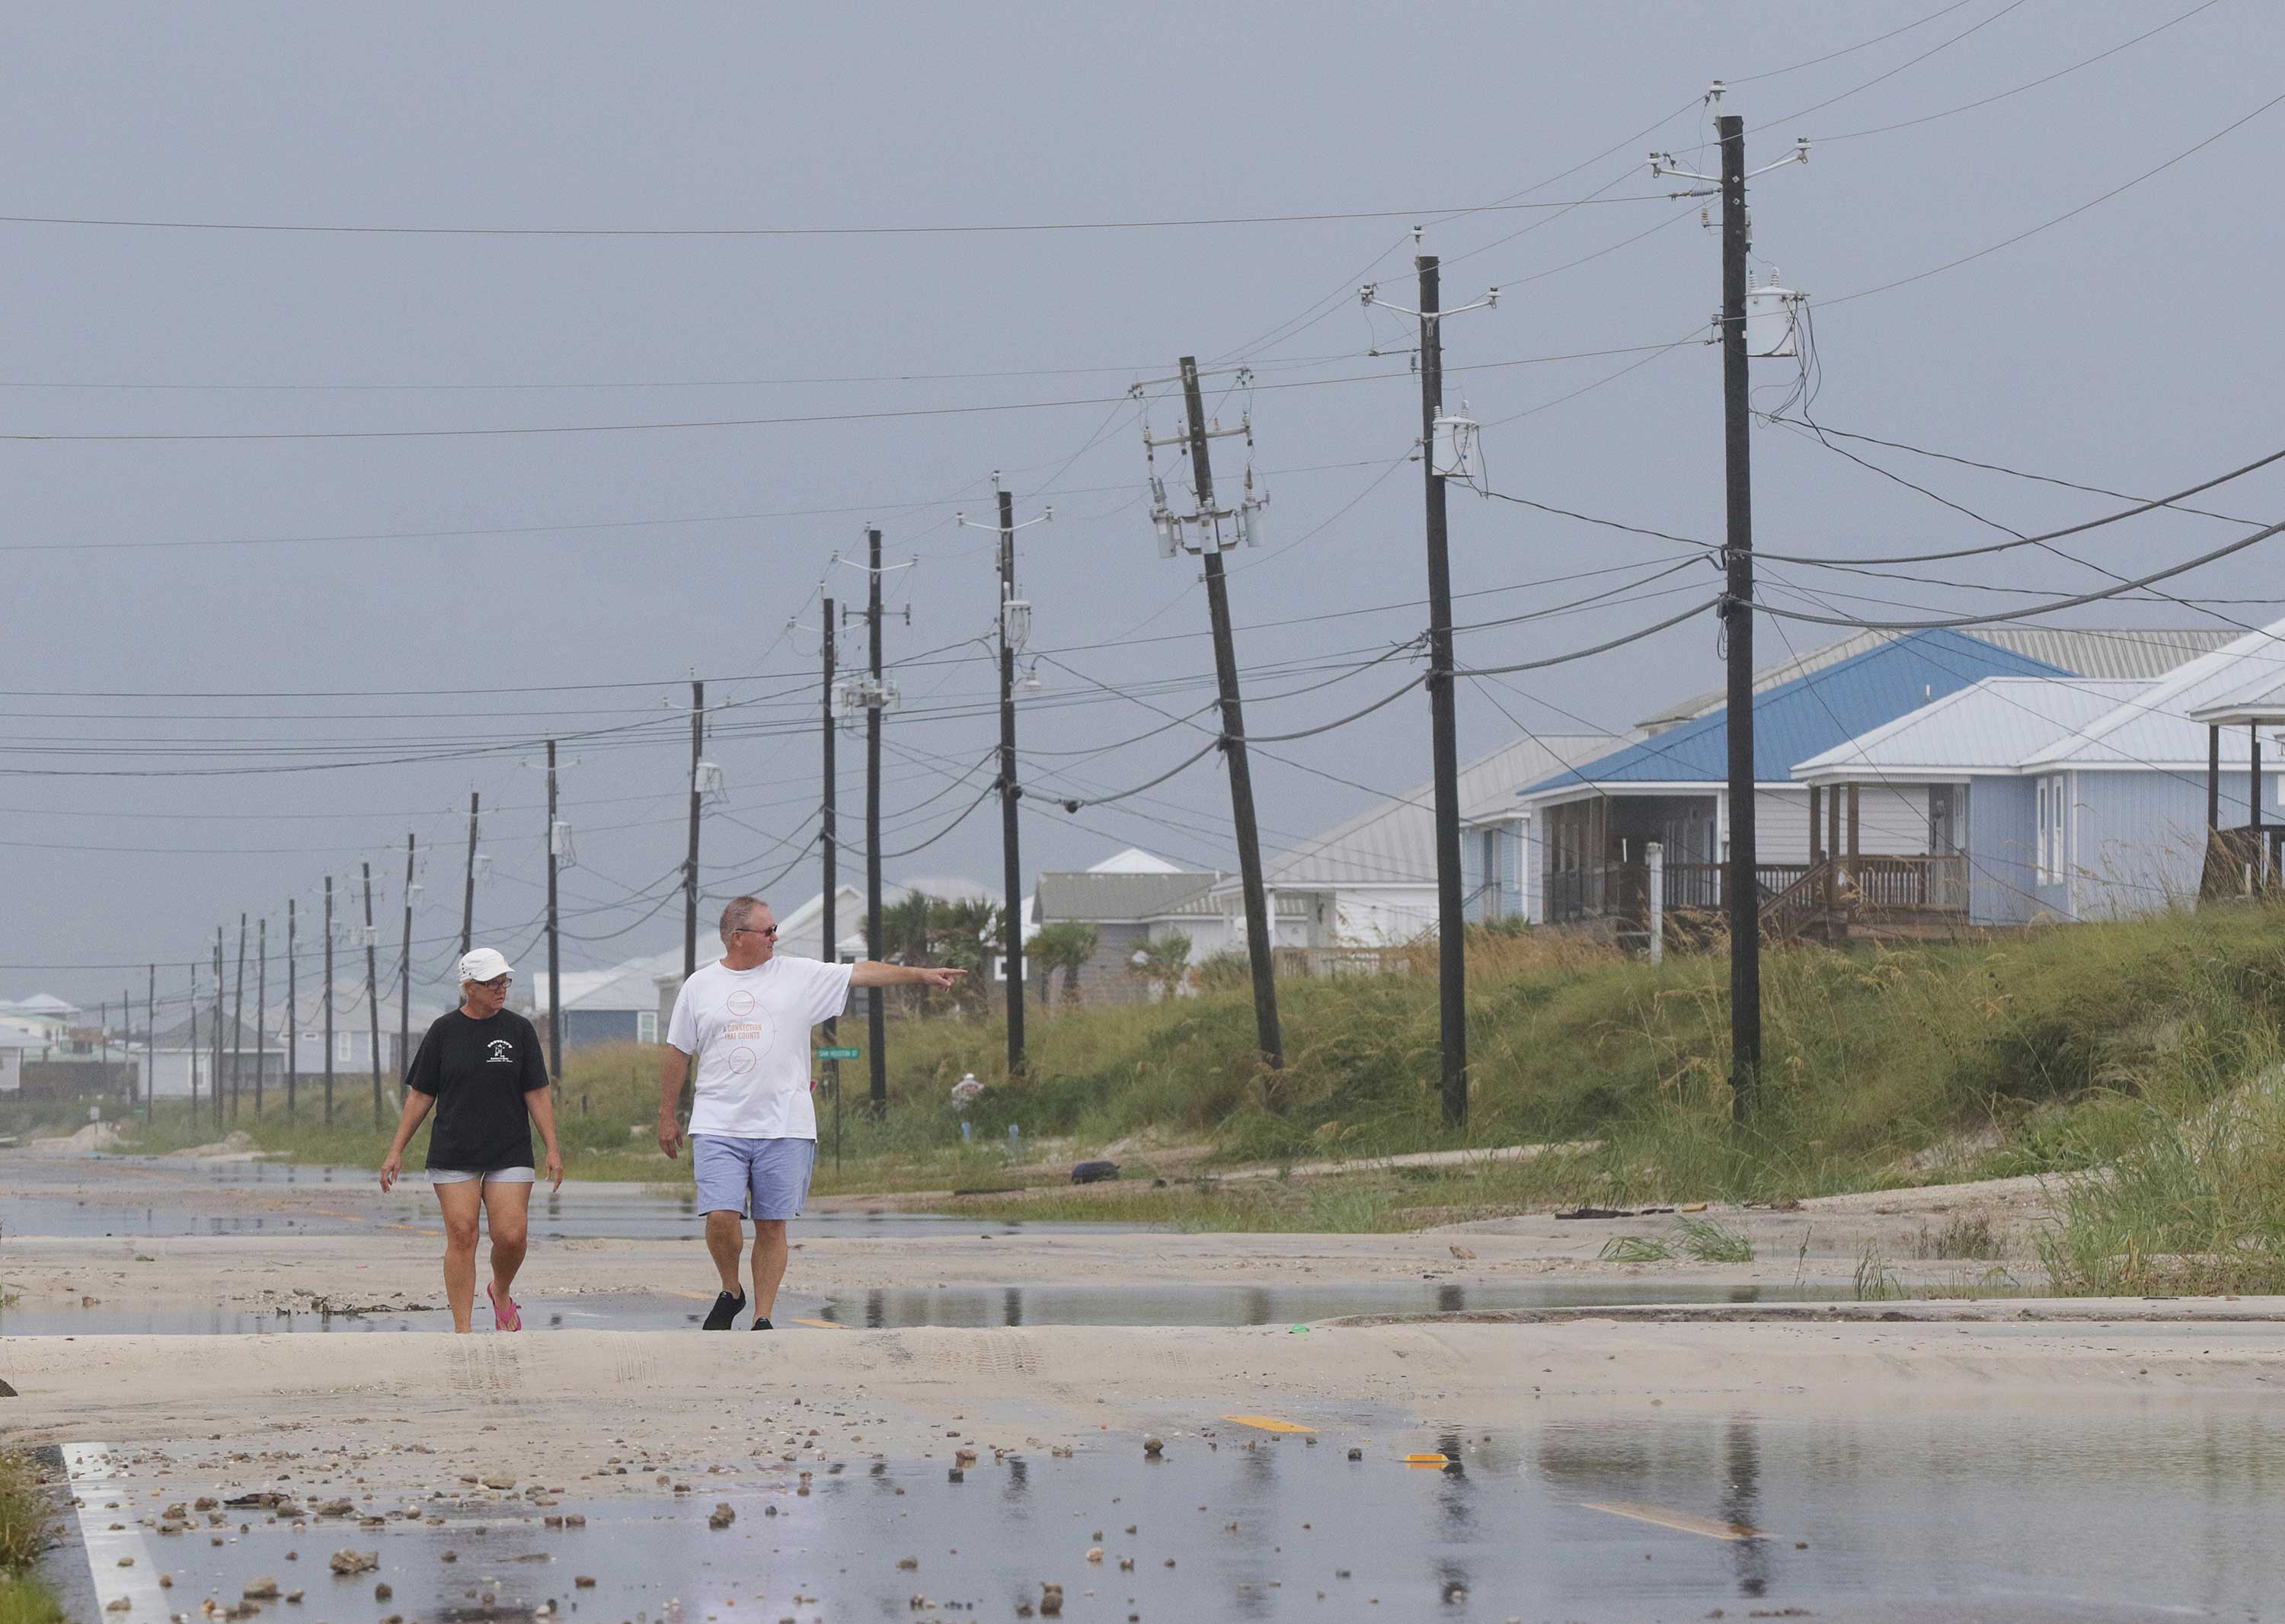 "<div class=""meta image-caption""><div class=""origin-logo origin-image none""><span>none</span></div><span class=""caption-text"">Susan and Bill Jones walk through a road partially covered with sand from Tropical Storm Gordon on Wednesday, Sept. 5, 2018, in Dauphin Island, Ala. (Dan Anderson/AP Photo)</span></div>"